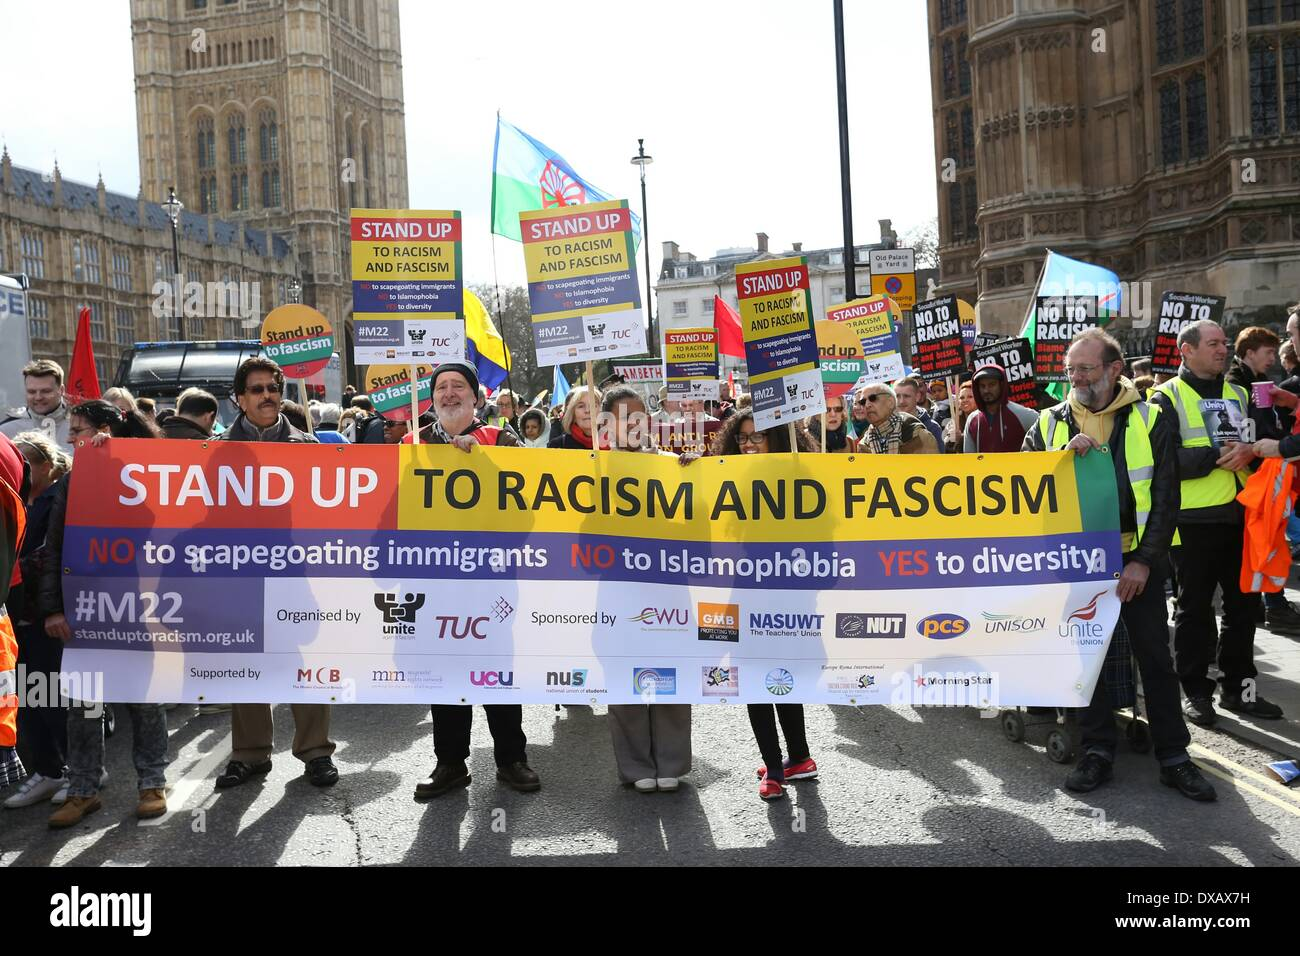 London, UK. 22nd March 2014. Thousands took part in a march and rally has taken place in central London on Saturday, March 22, 2014, to coincide with UN anti-racism day as part of European wide action to stand up against racism and fascism. The procession assembled outside Parliament before marching the Trafalgar Square for a rally. The march was organised by the TUC (Trades Union Congress) and UAF (Unite Against Fascism). Credit:  Christopher Middleton/Alamy Live News - Stock Image